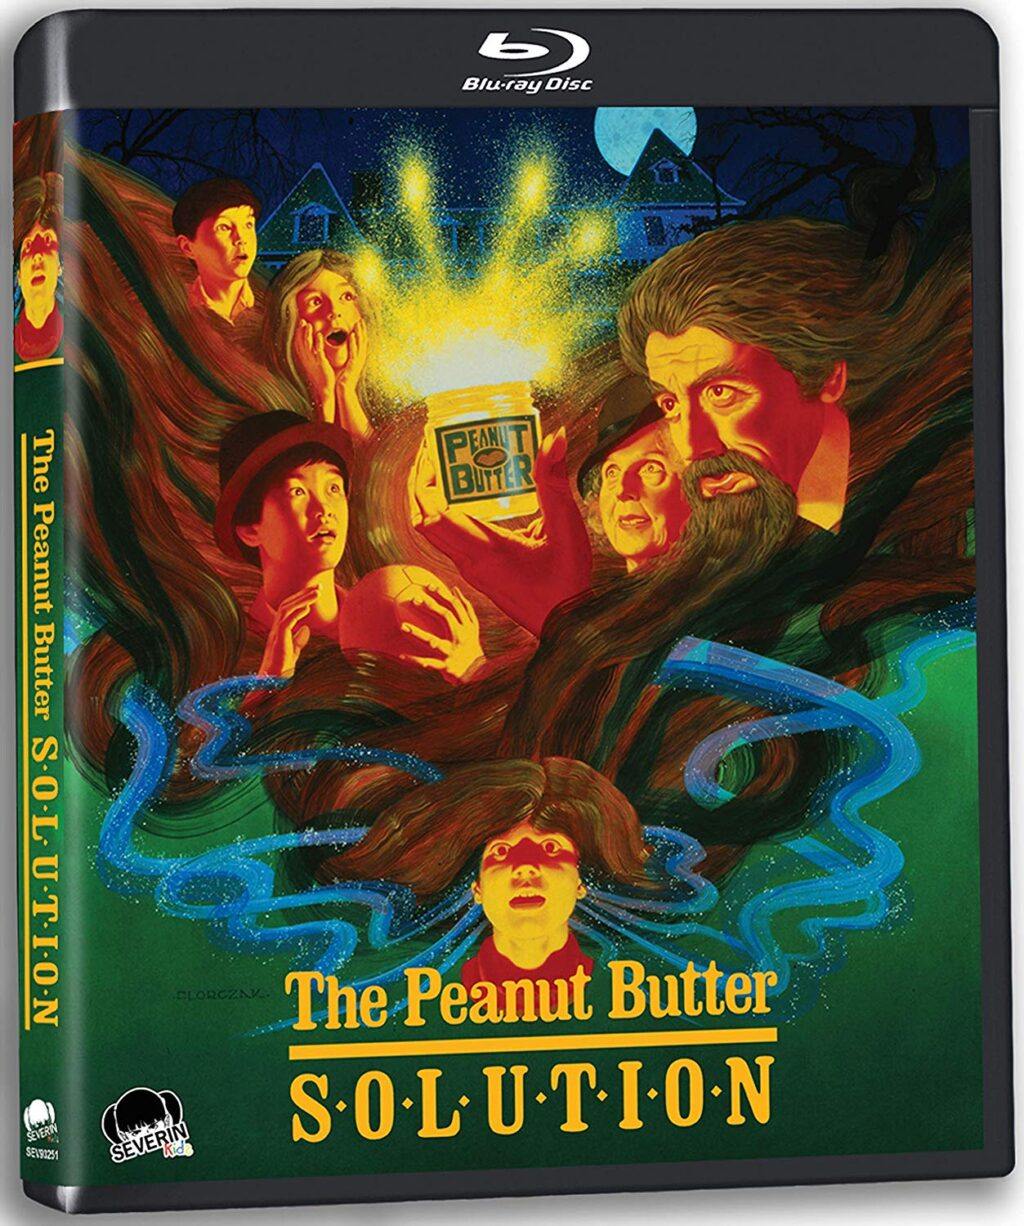 peanut butter solution blu 1024x1226 - THE PEANUT BUTTER SOLUTION Blu-ray Review - A Sticky Situation For Scared Kids